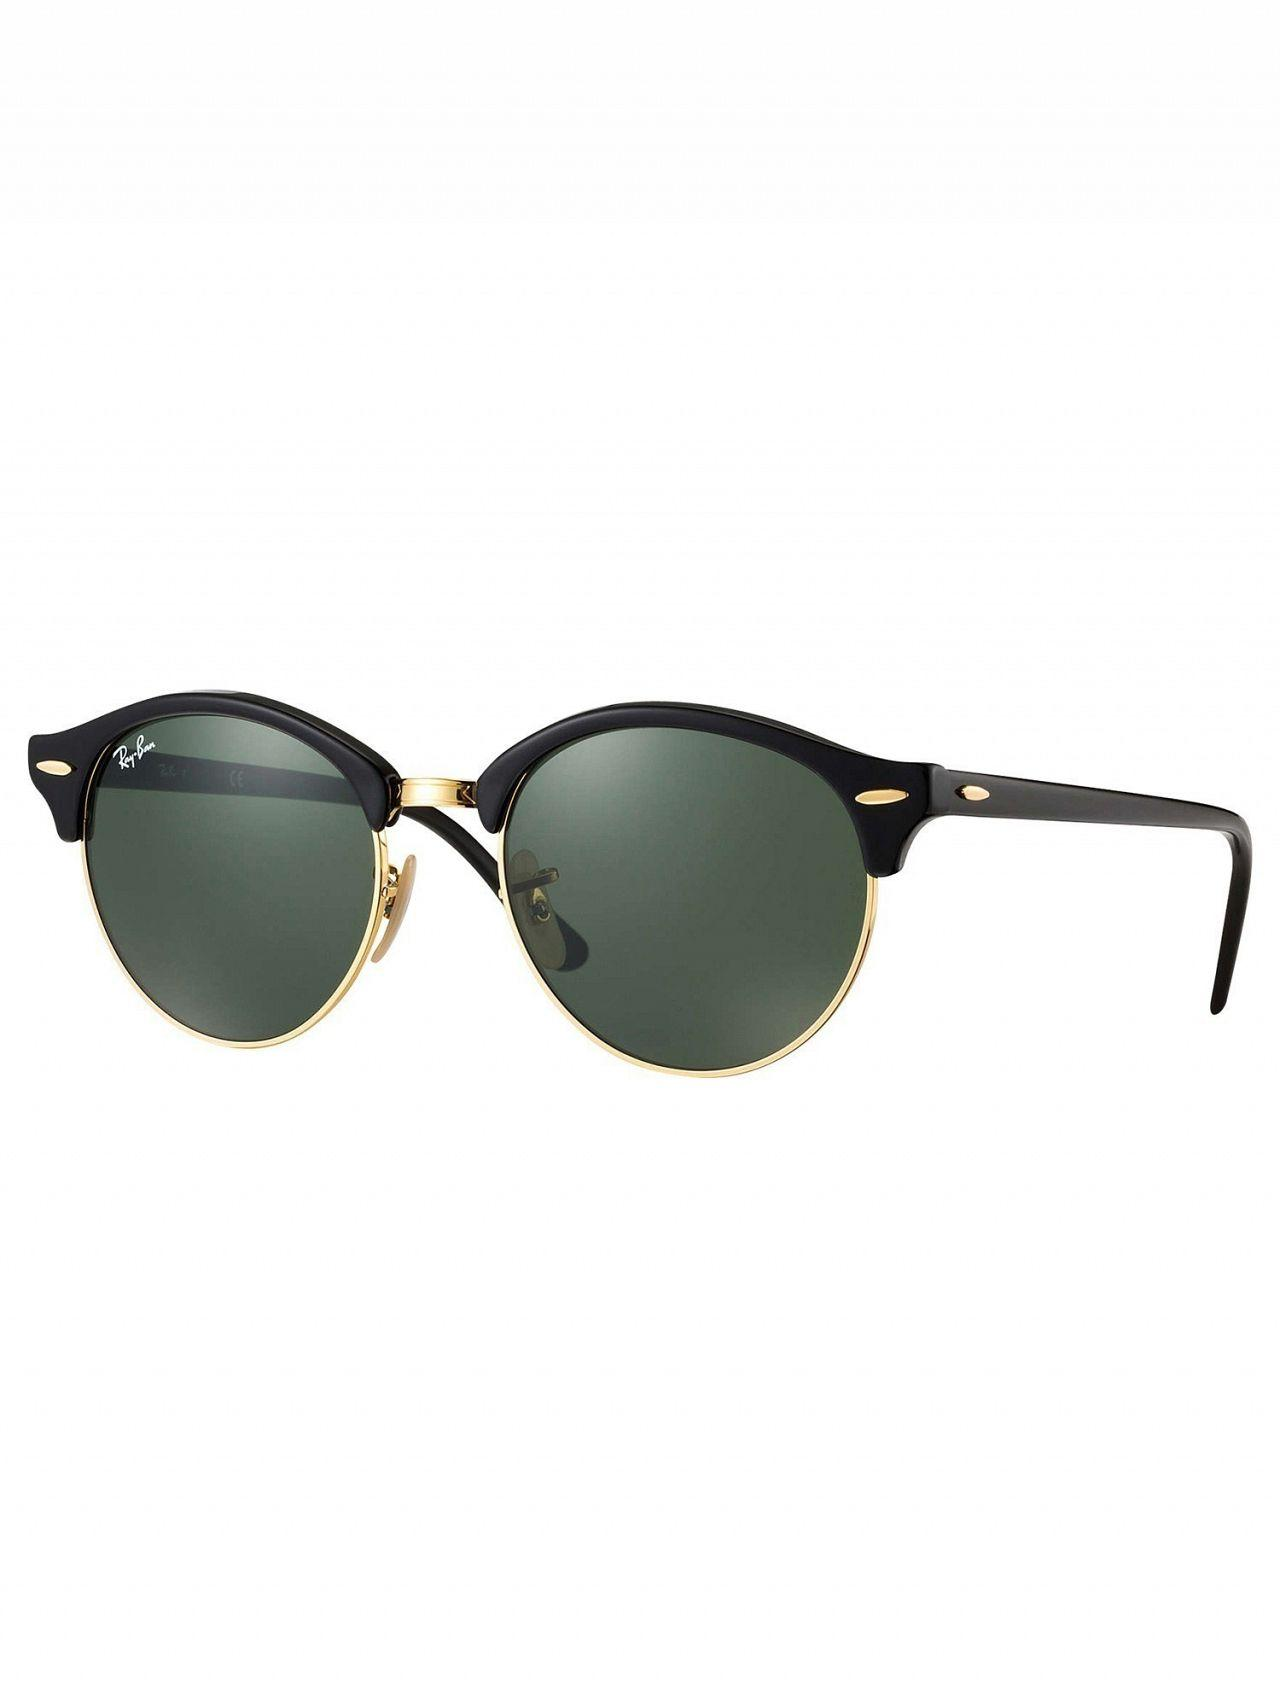 5f2526ad07 Lyst - Ray-Ban Black Rb4246 Clubround Sunglasses in Black for Men